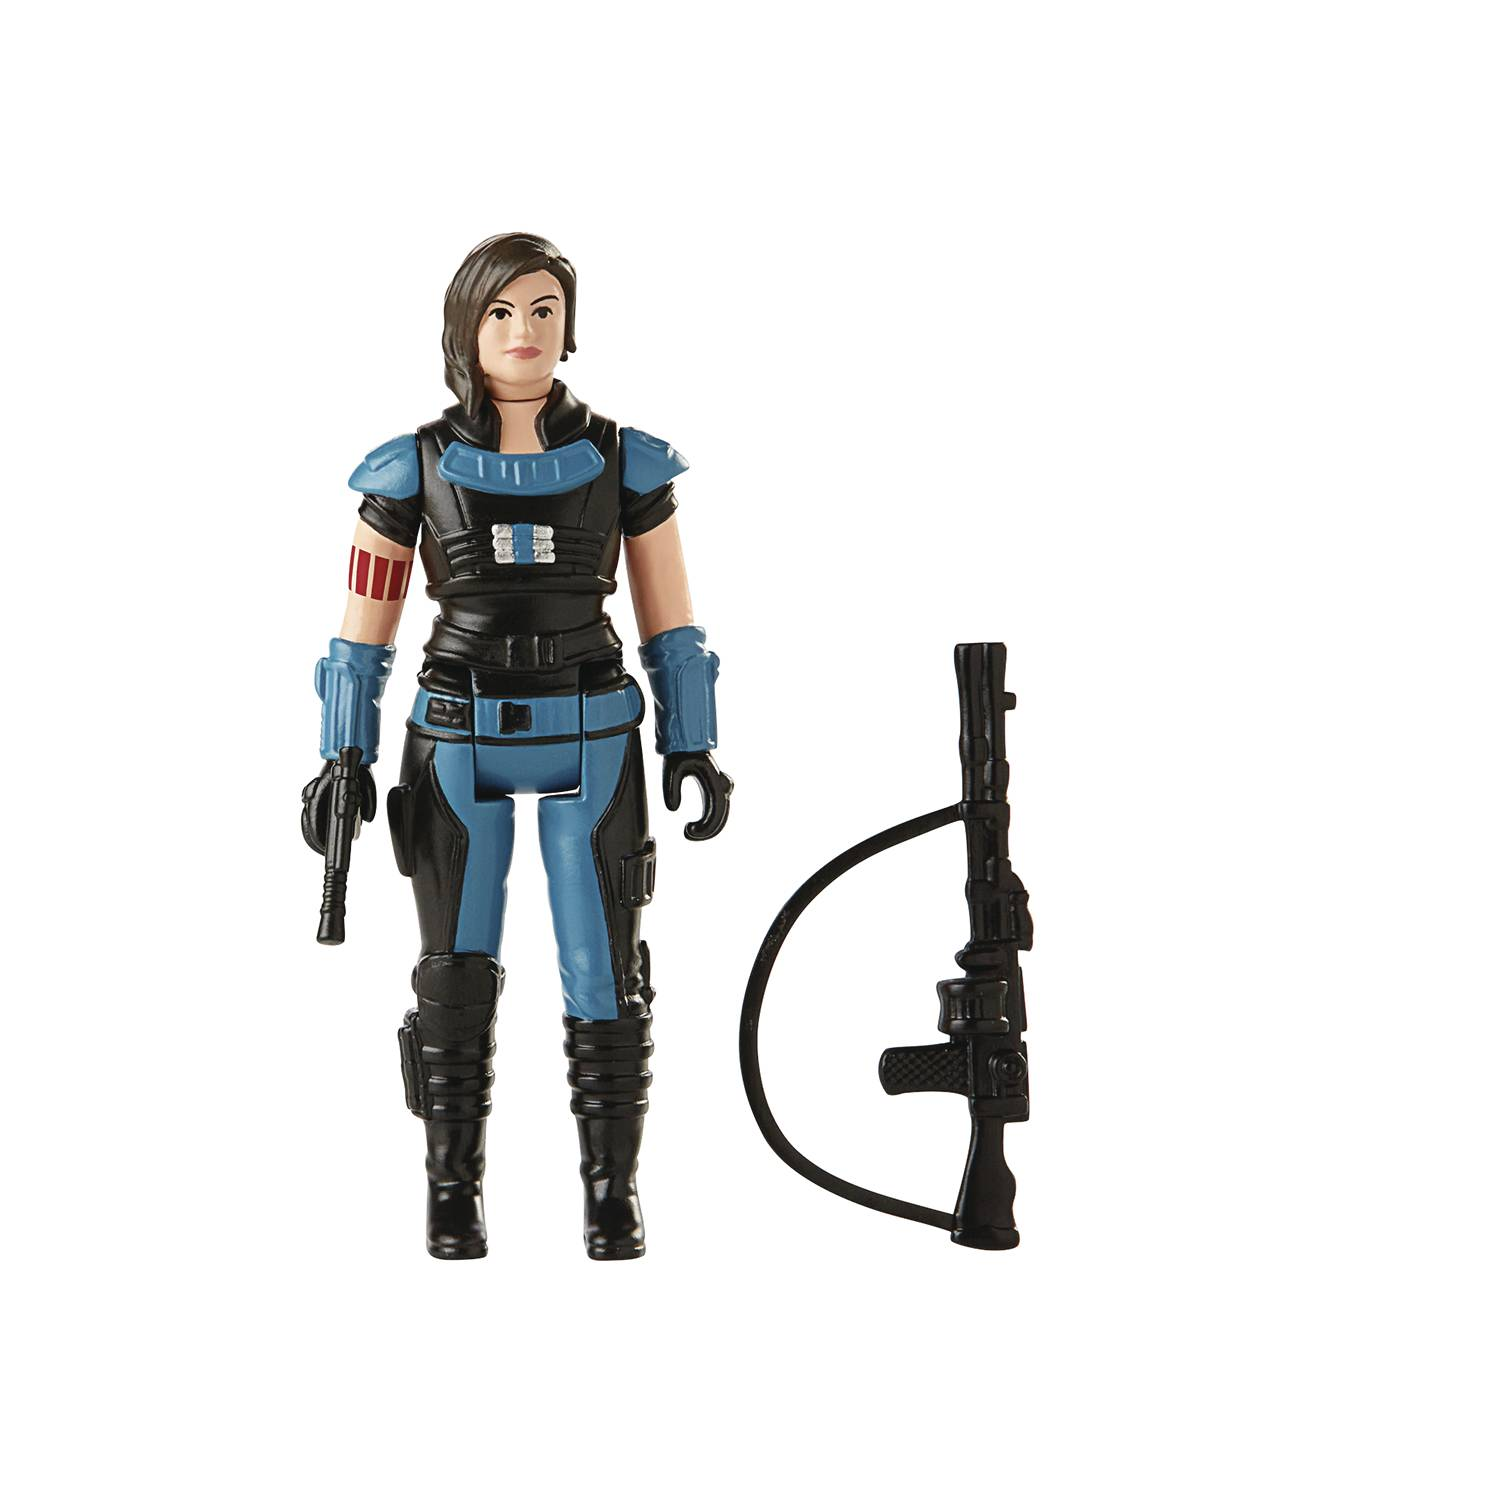 Star Wars Retro Collection - The Mandalorian - Cara Dune 3.75inch Action Figure